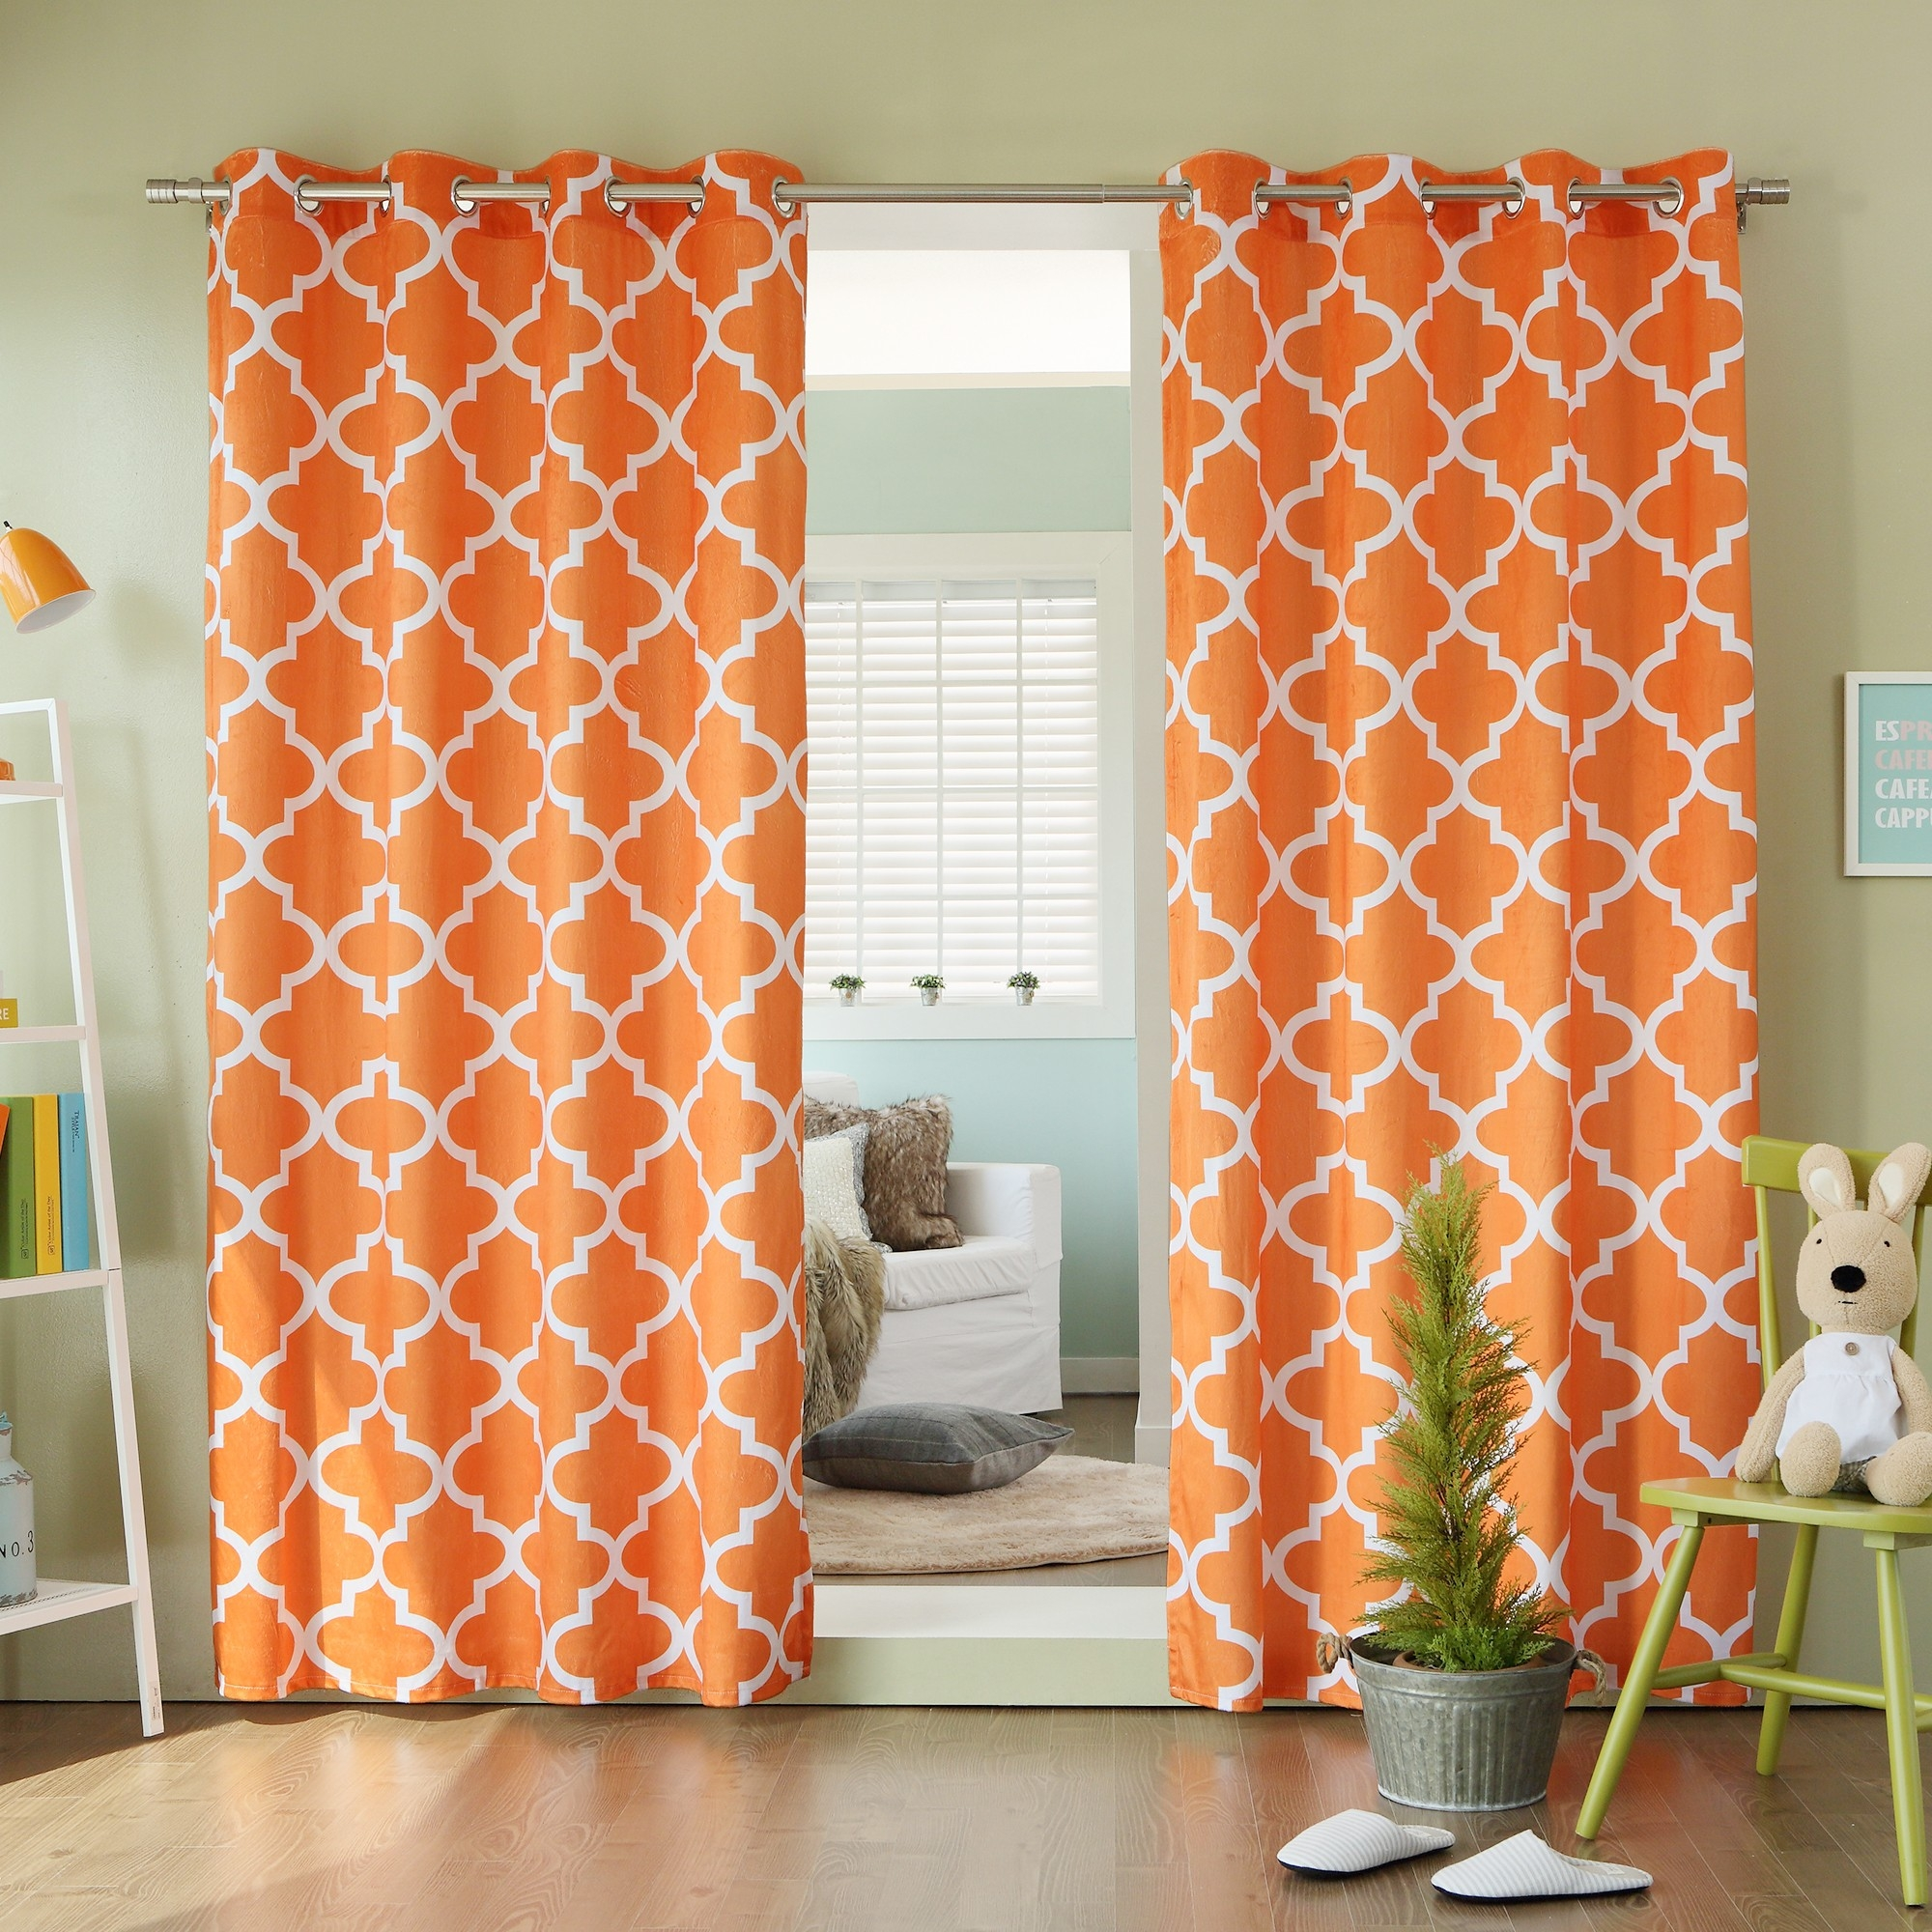 15 Moroccan Print Curtains  Curtain Ideas